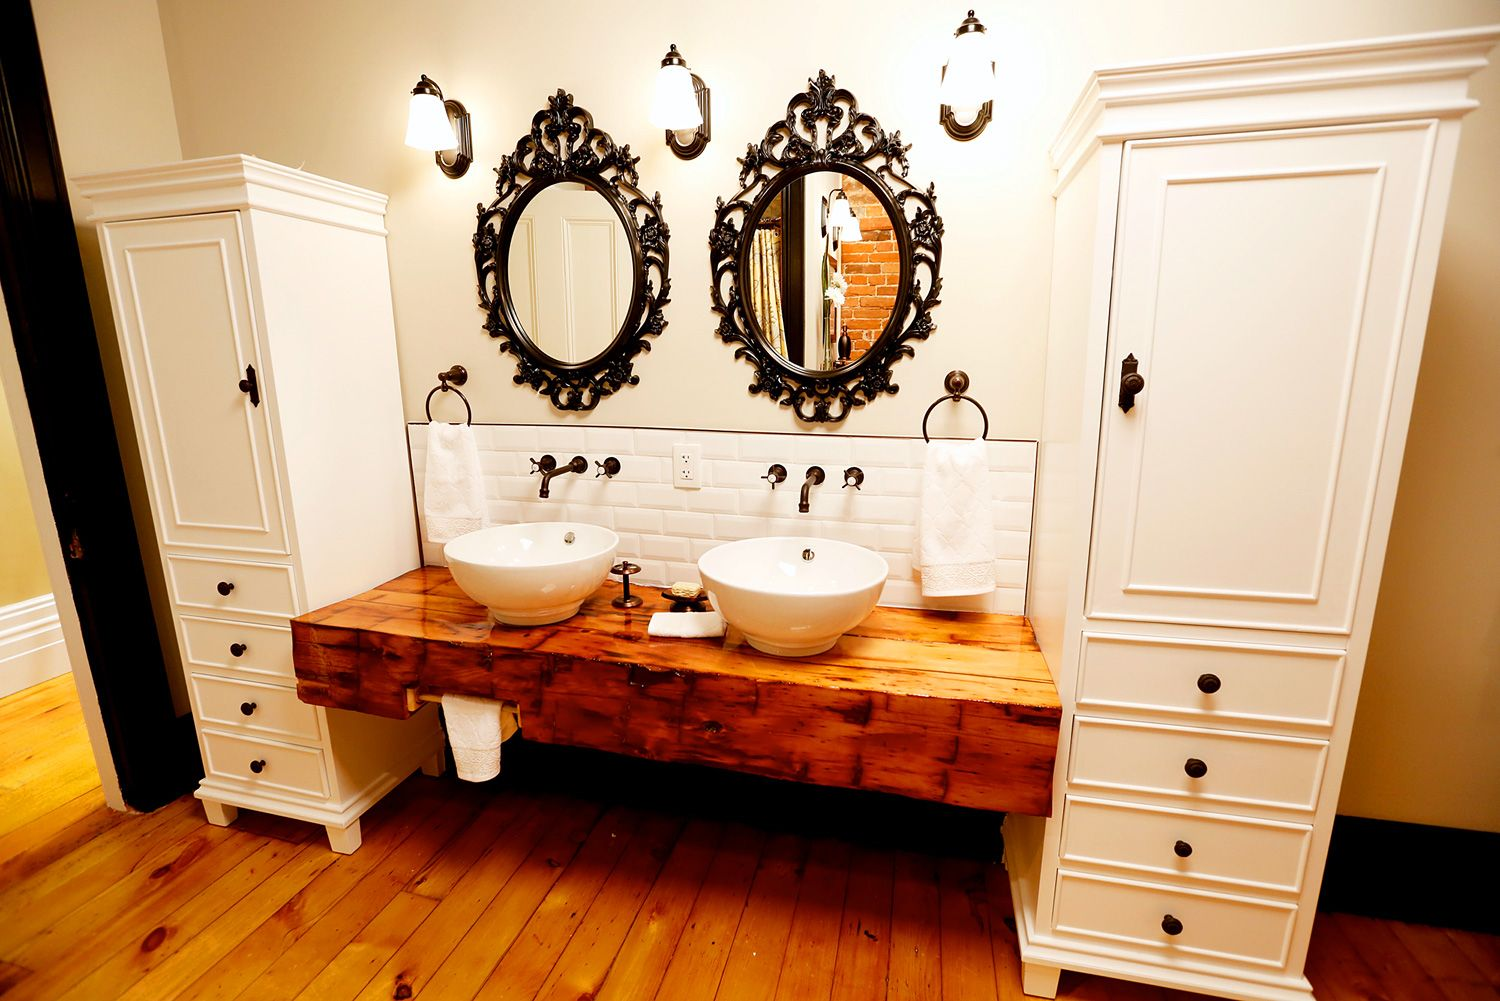 Modern vessel-style sinks pair beautifully with the reclaimed barn ...